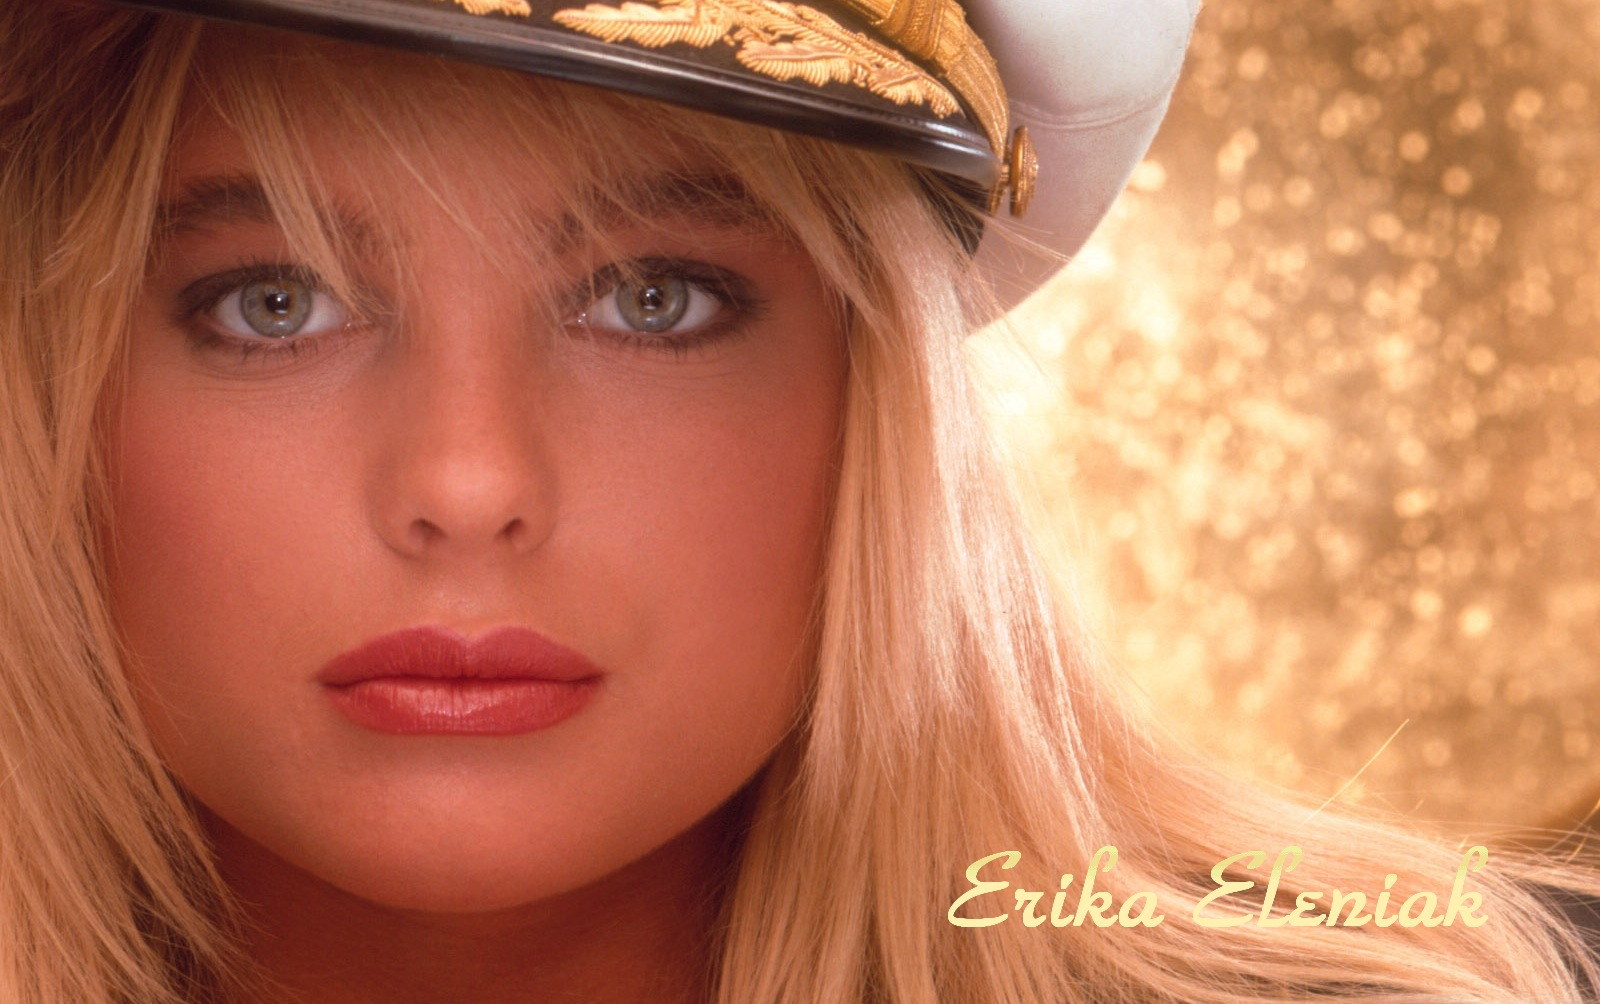 Erika Eleniak Wallpaper Images And Pictures Tattoo Picture